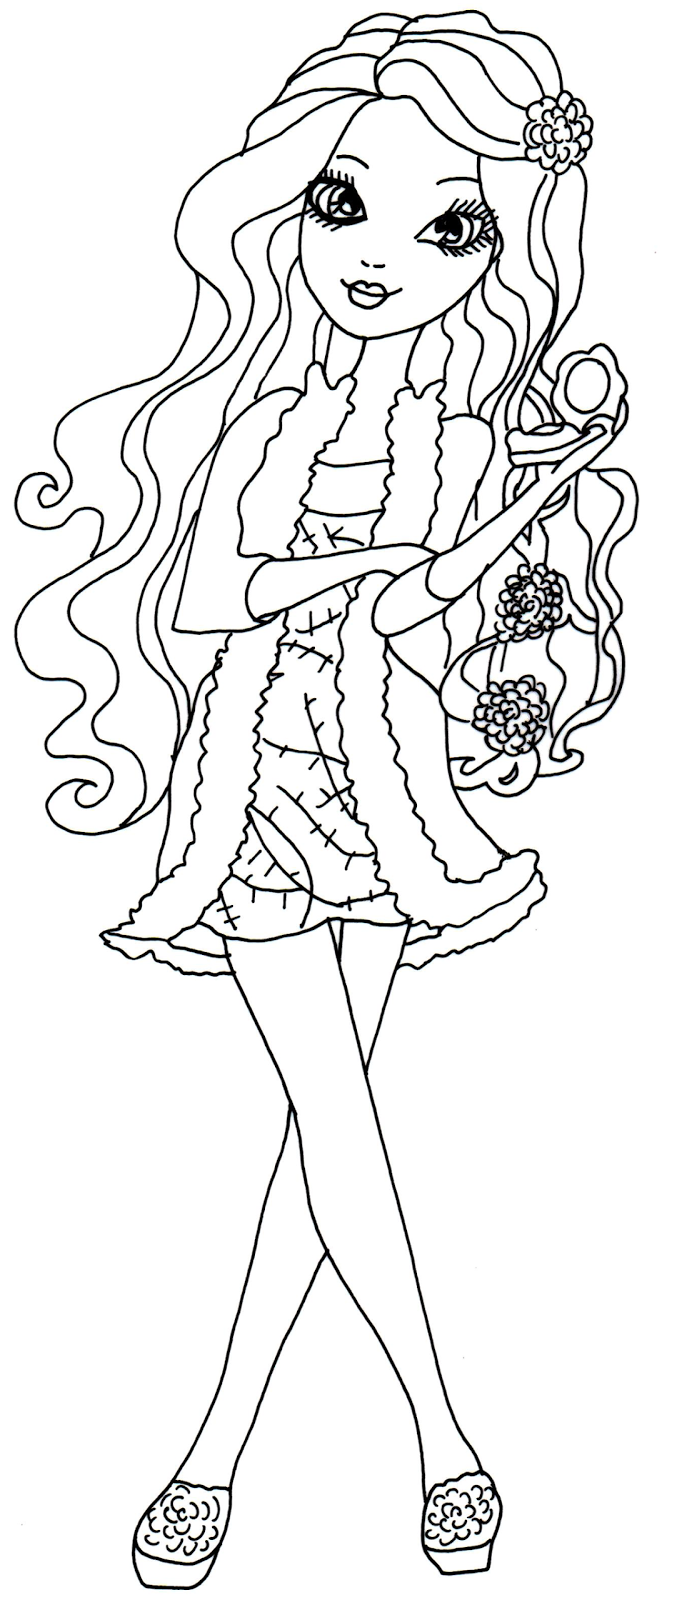 Free Printable Ever After High Coloring Pages: Briar Beauty Getting ...